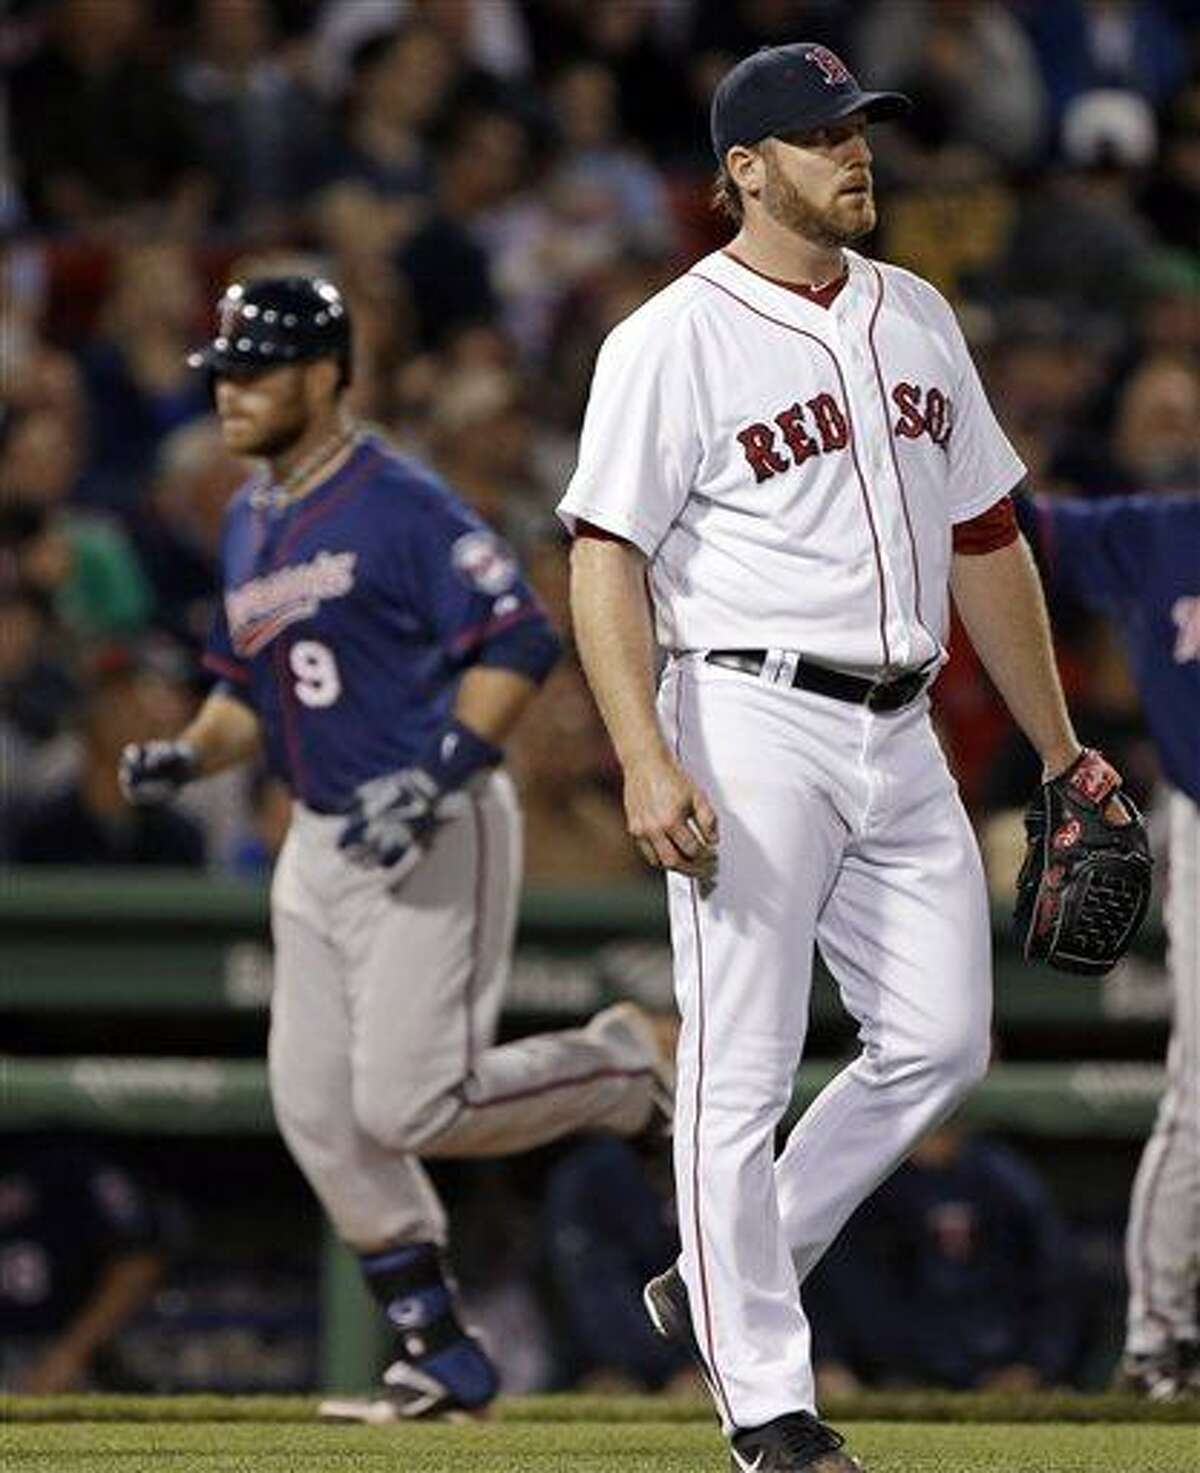 Boston Red Sox starting pitcher Ryan Dempster reacts as Minnesota Twins designated hitter Ryan Doumit (9) rounds third after hitting a solo home run during the seventh inning of a baseball game at Fenway Park in Boston, Tuesday, May 7, 2013. (AP Photo/Elise Amendola)